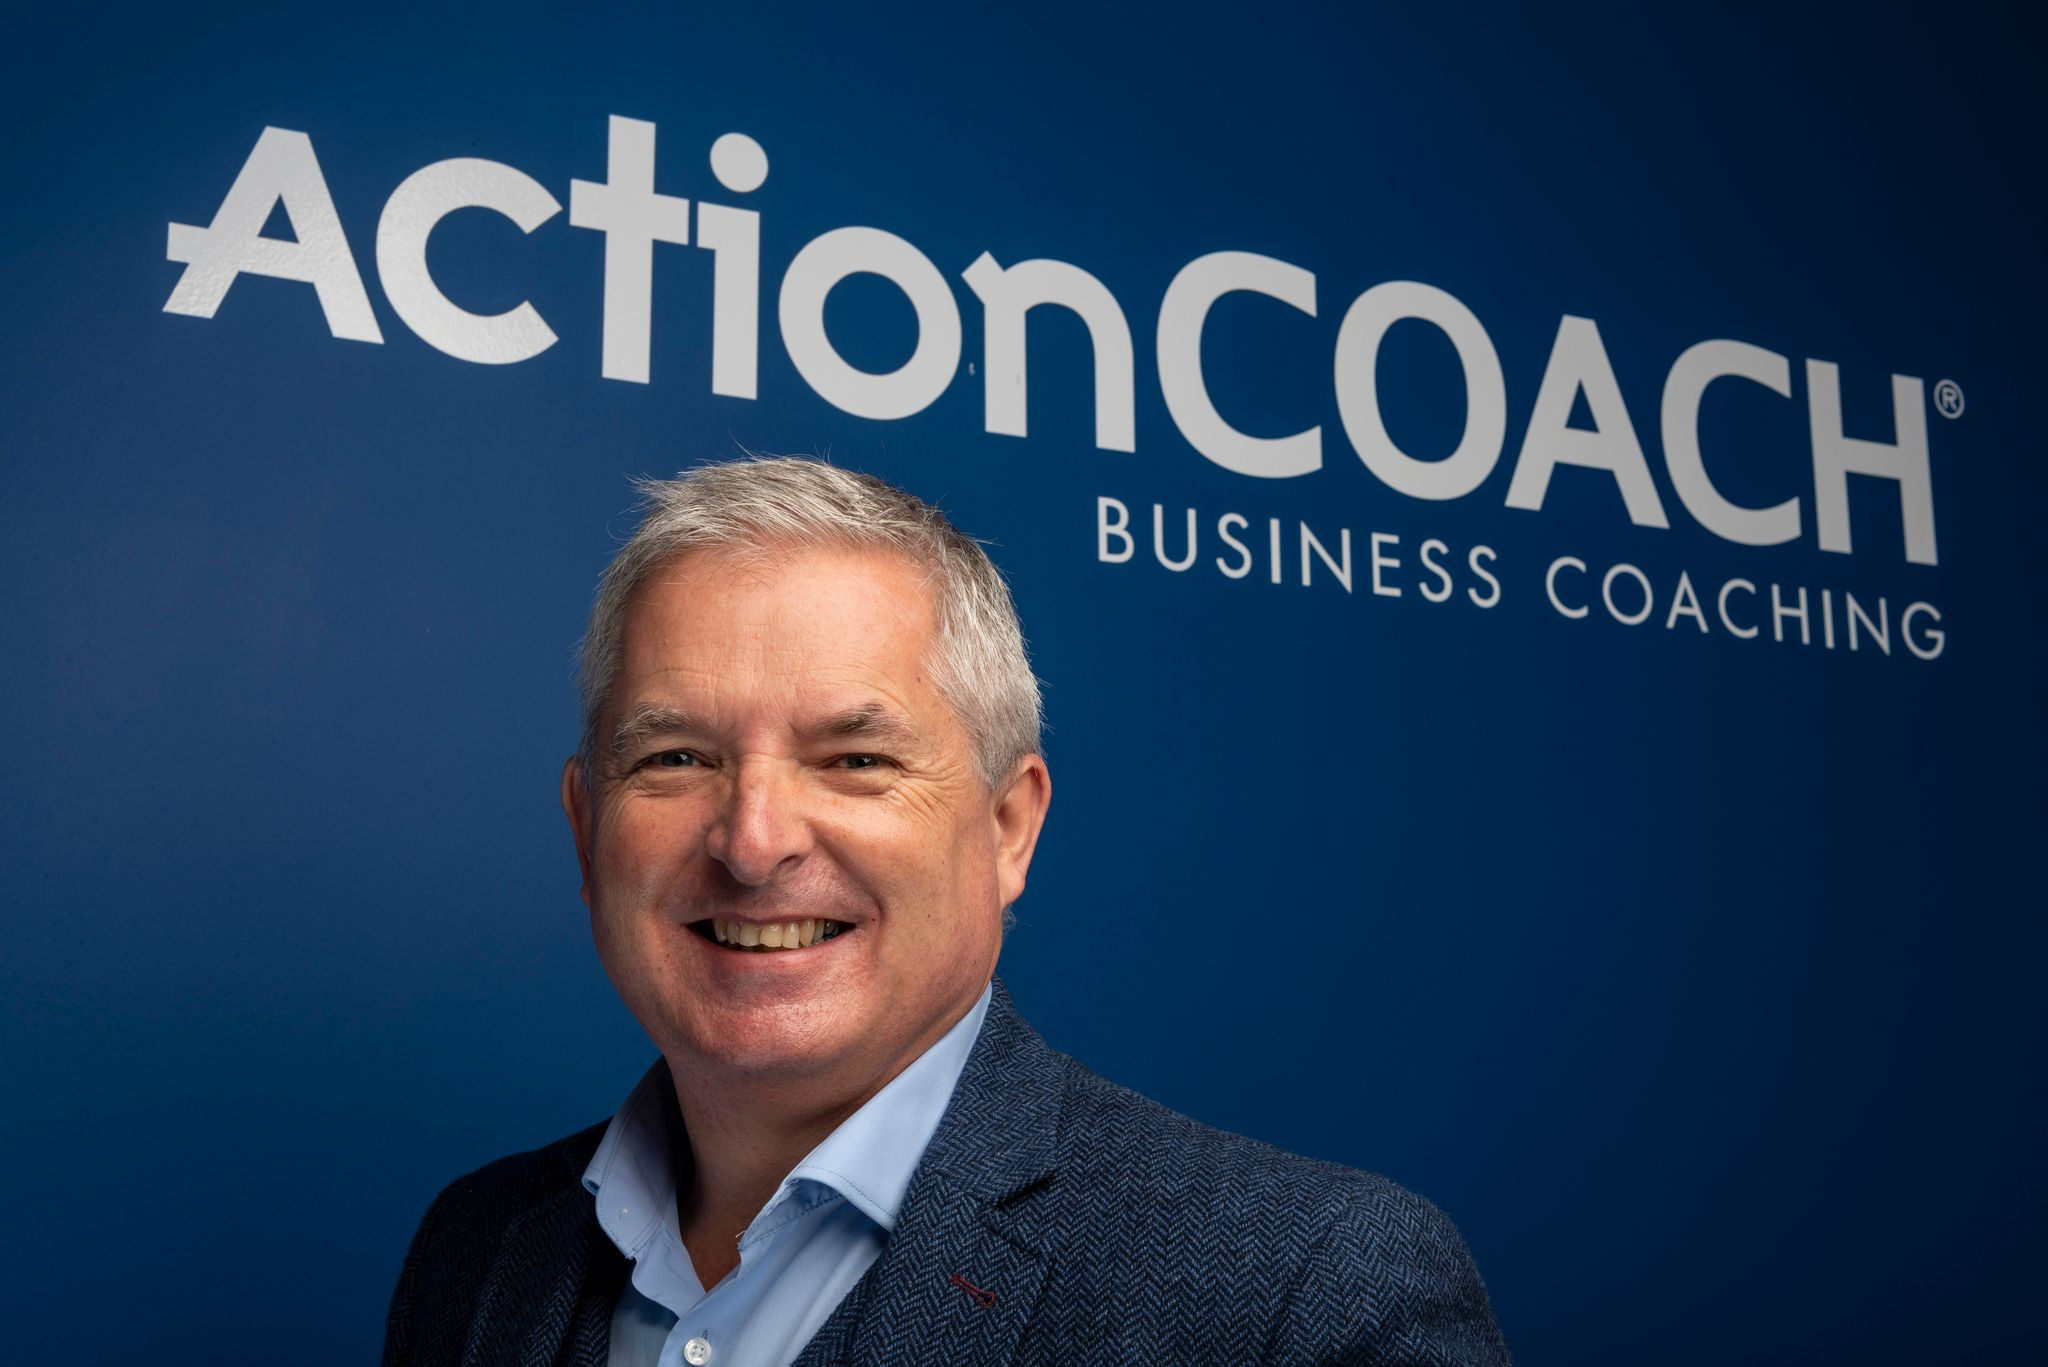 ACTIONCOACH BOLTON MD NOMINATED FOR COMMUNITY HERO AWARD